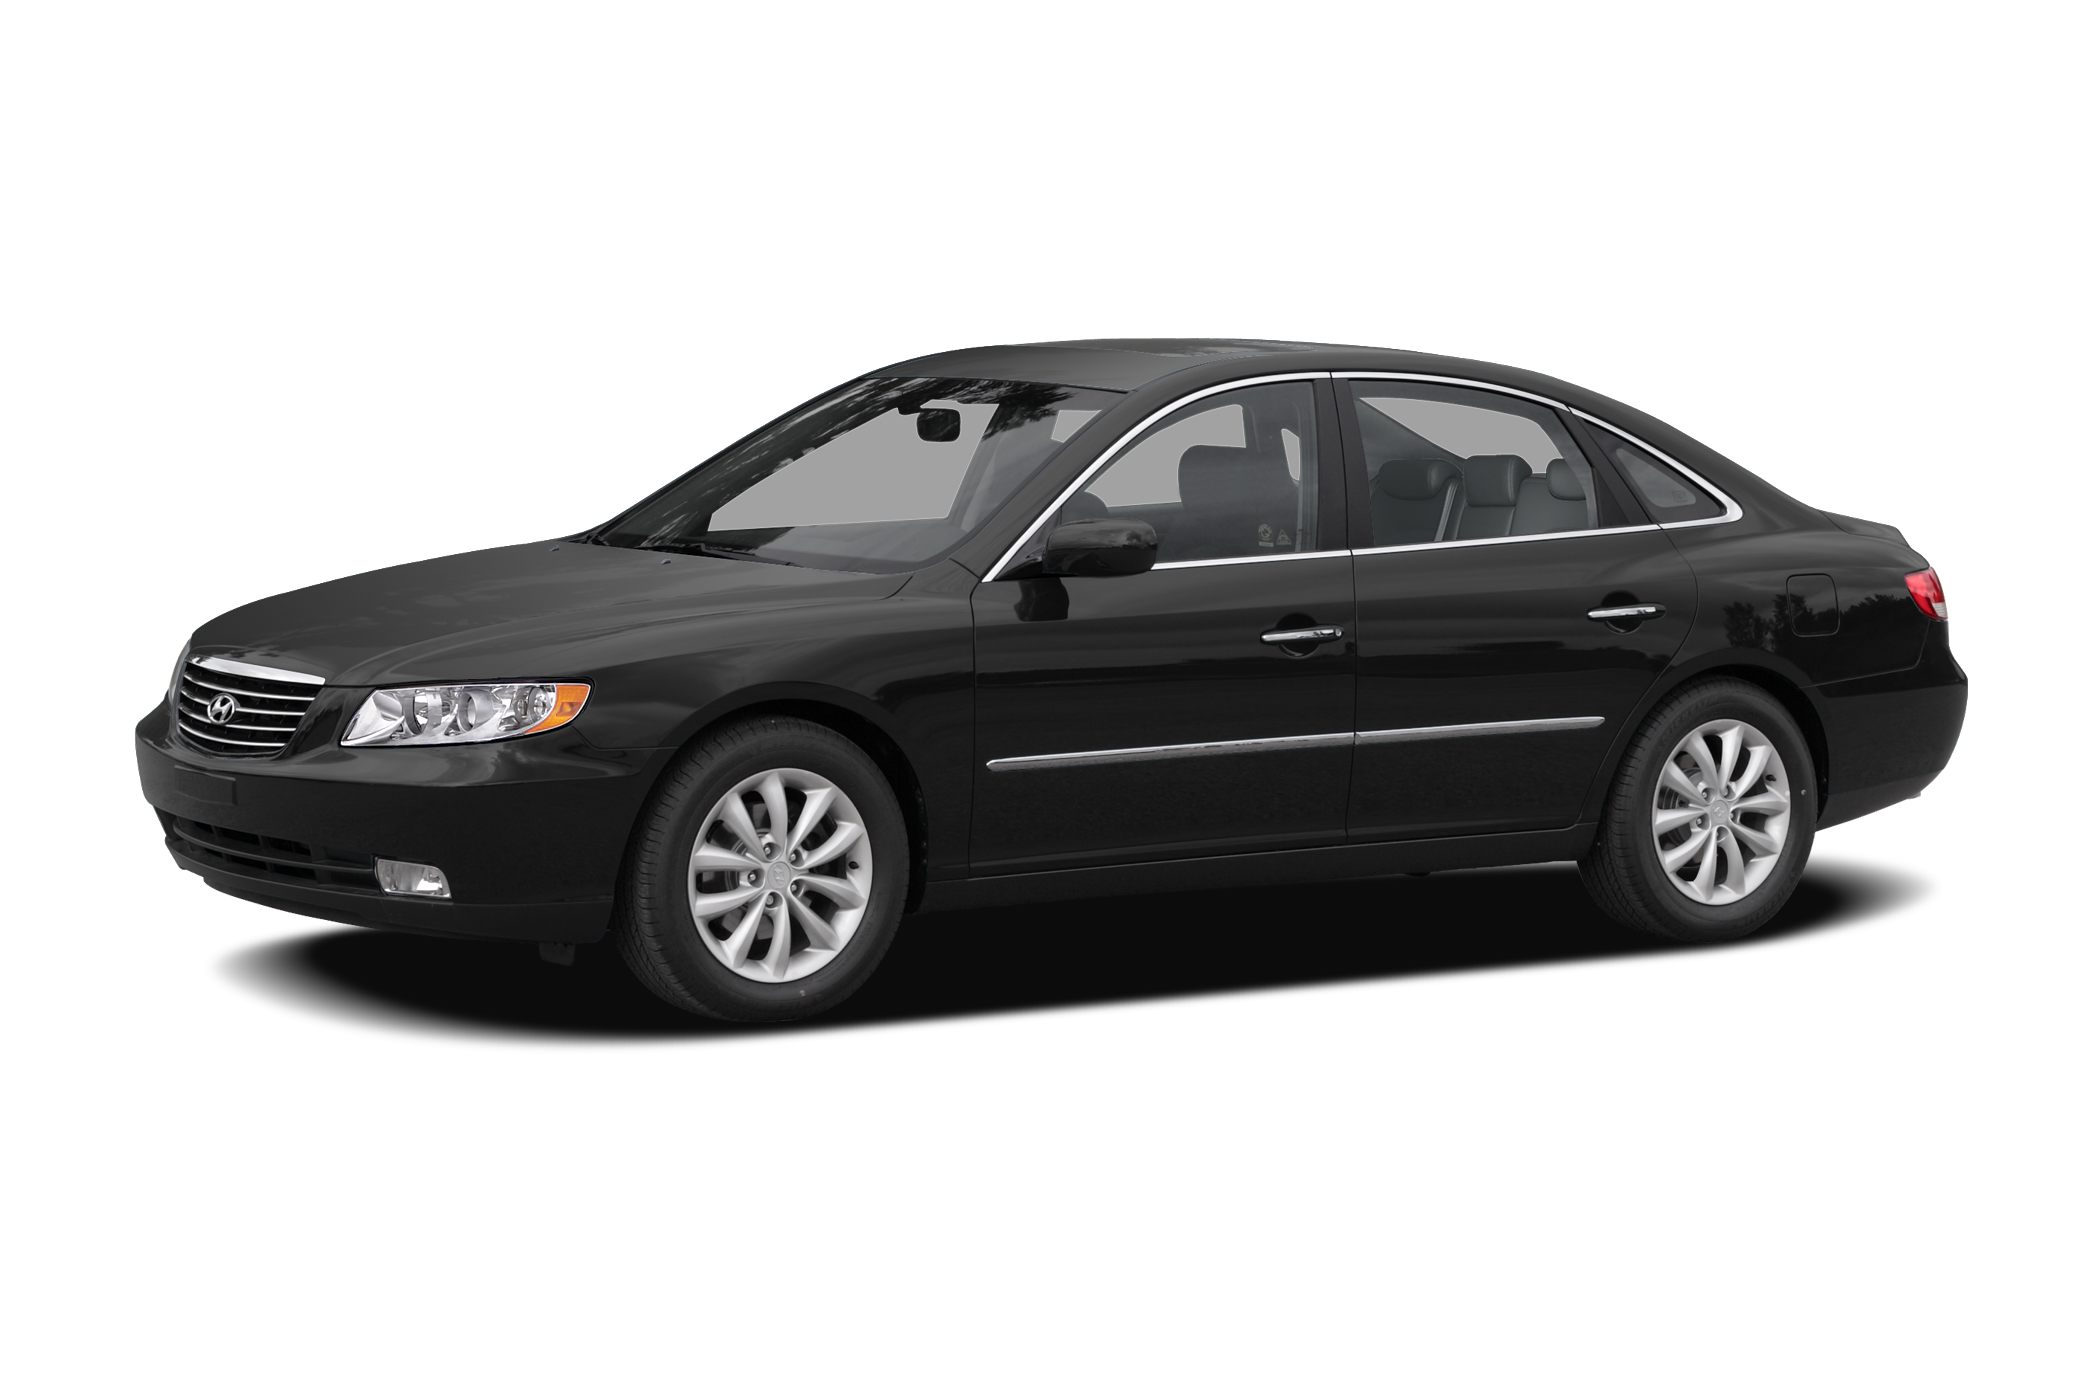 2006 Hyundai Azera Limited Sedan for sale in Austin for $8,939 with 96,572 miles